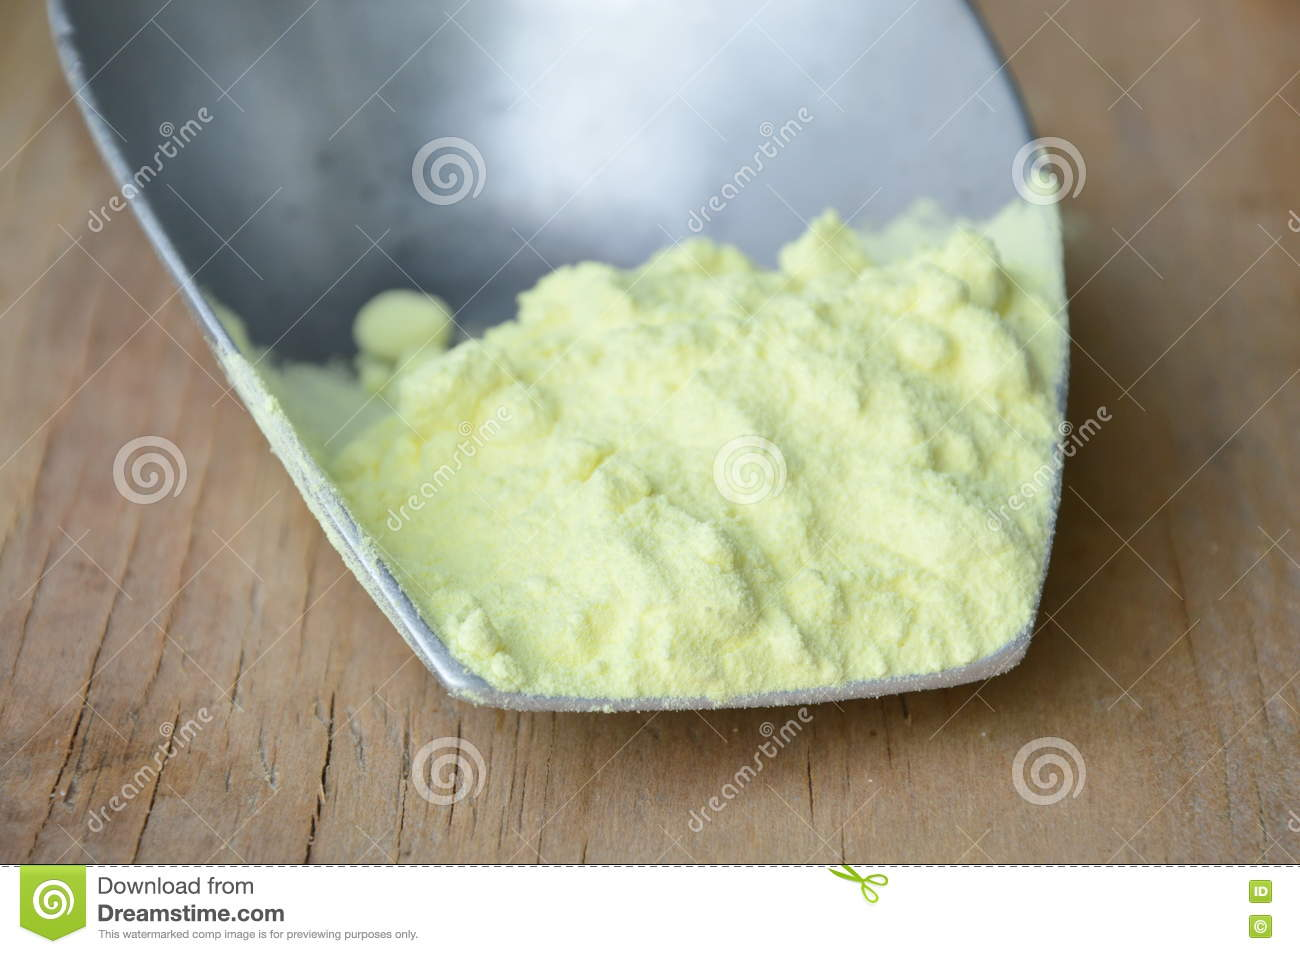 Sulfur Powder On Iron Scoop Stock Photo - Image of chemical